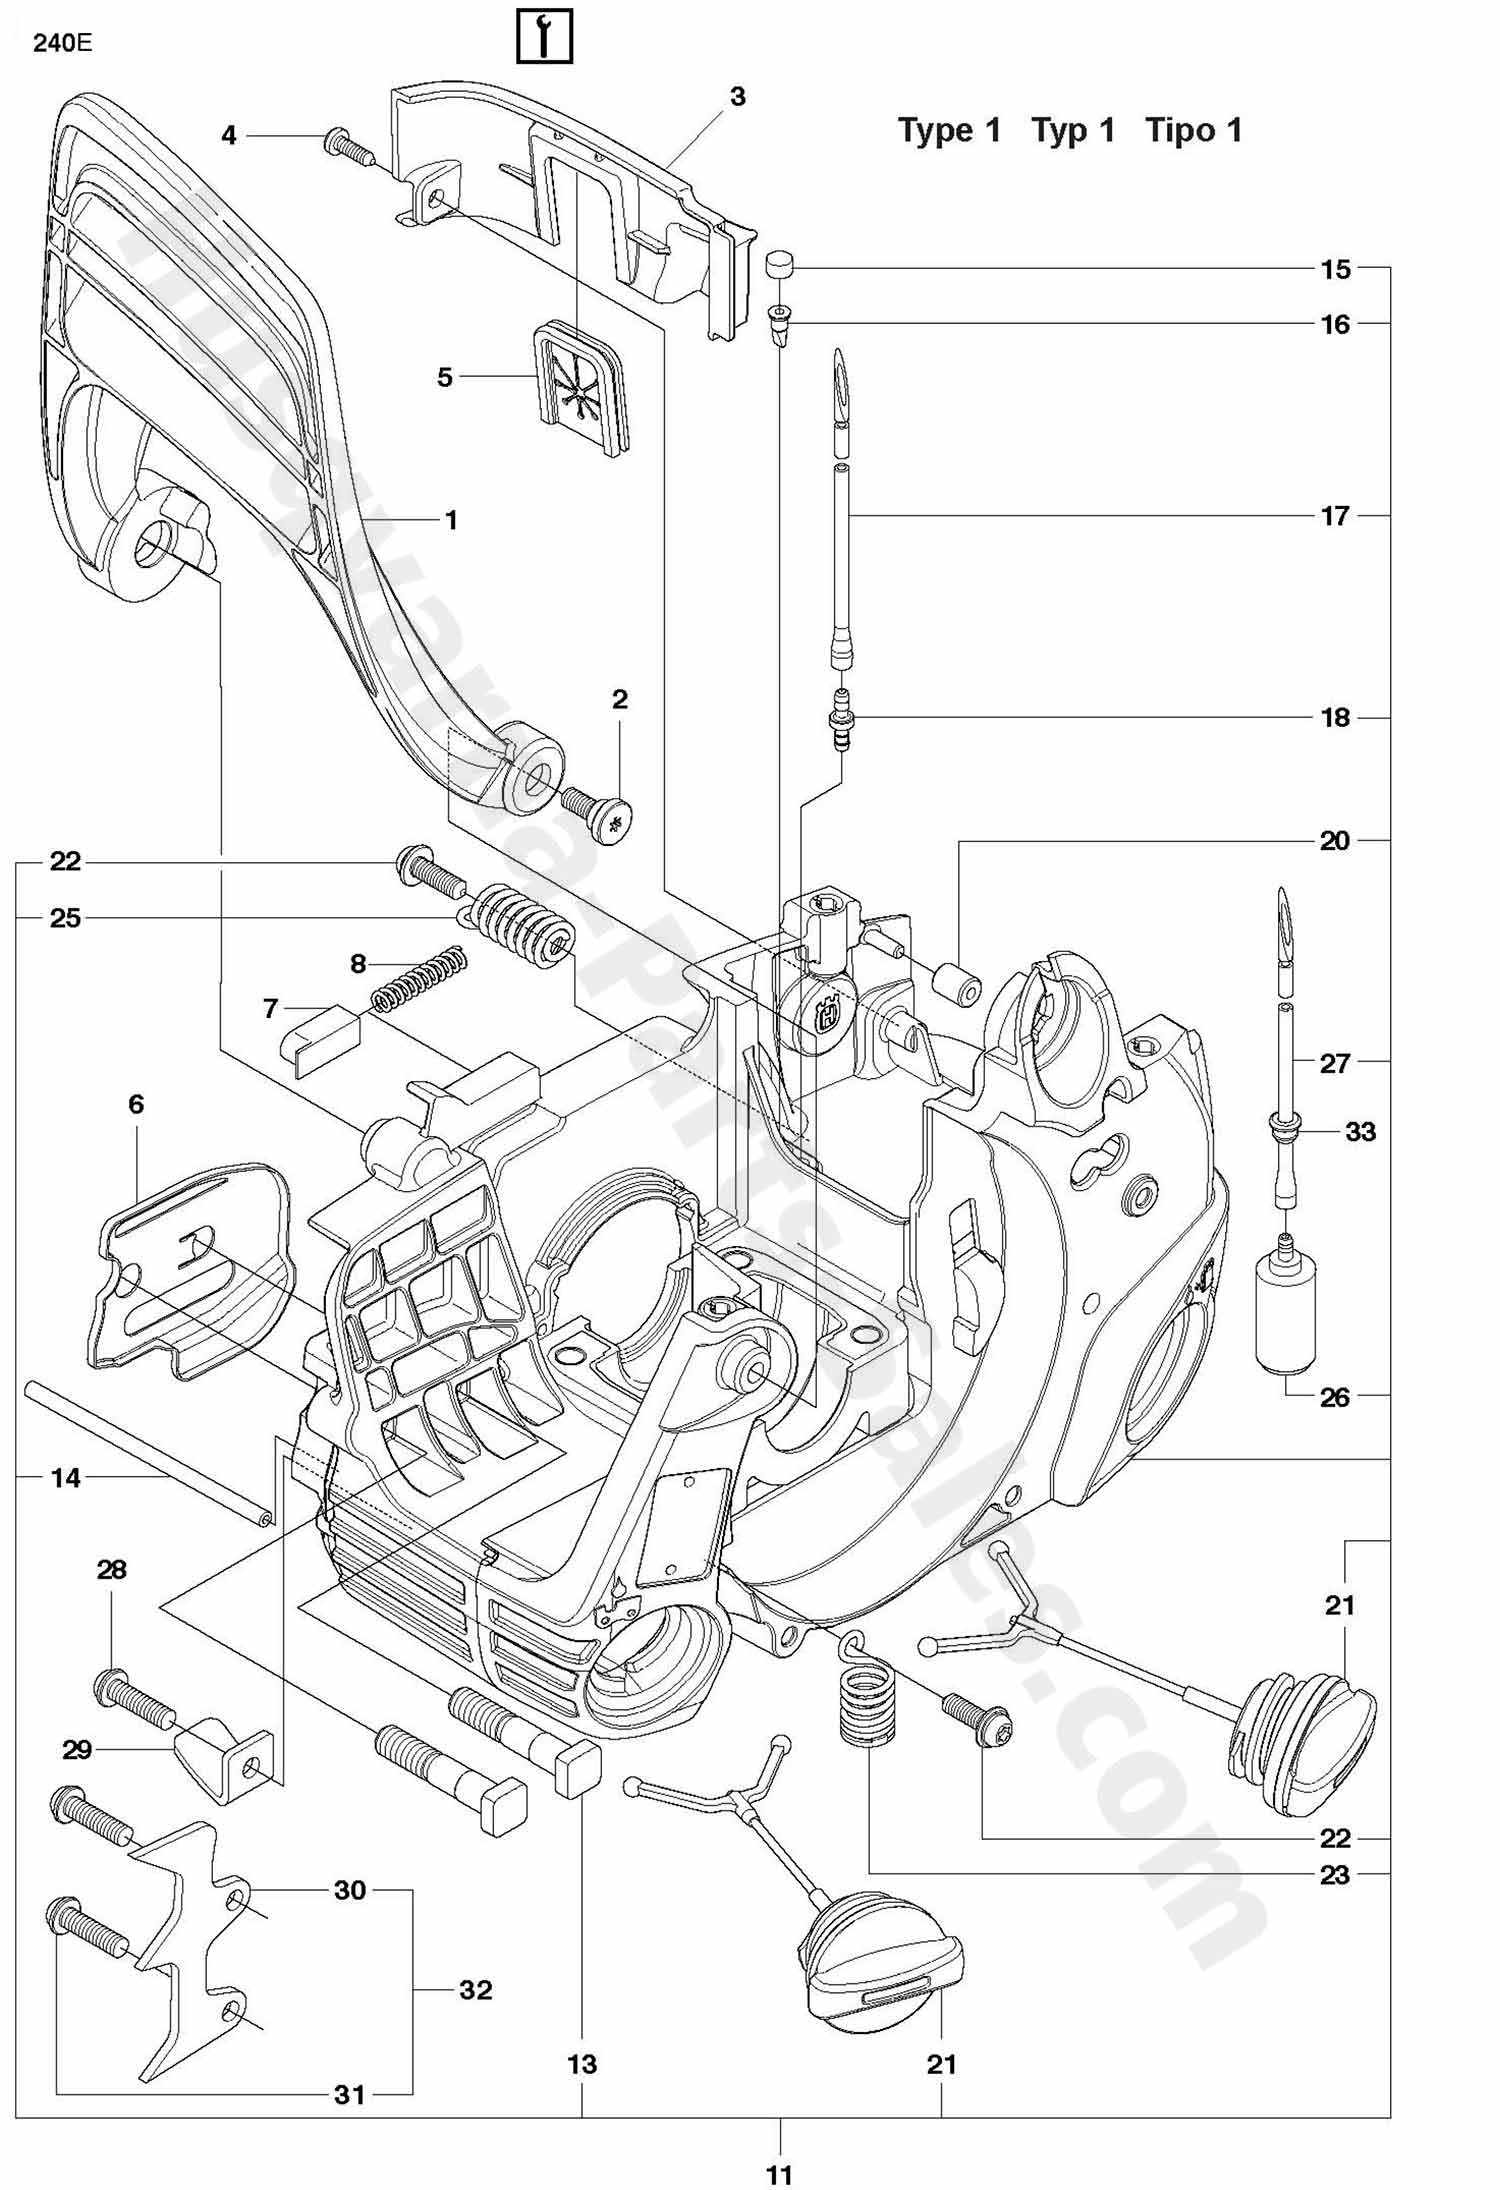 husqvarna 240 chainsaw parts diagram rca plug 240e chain saw fuel tank and handle